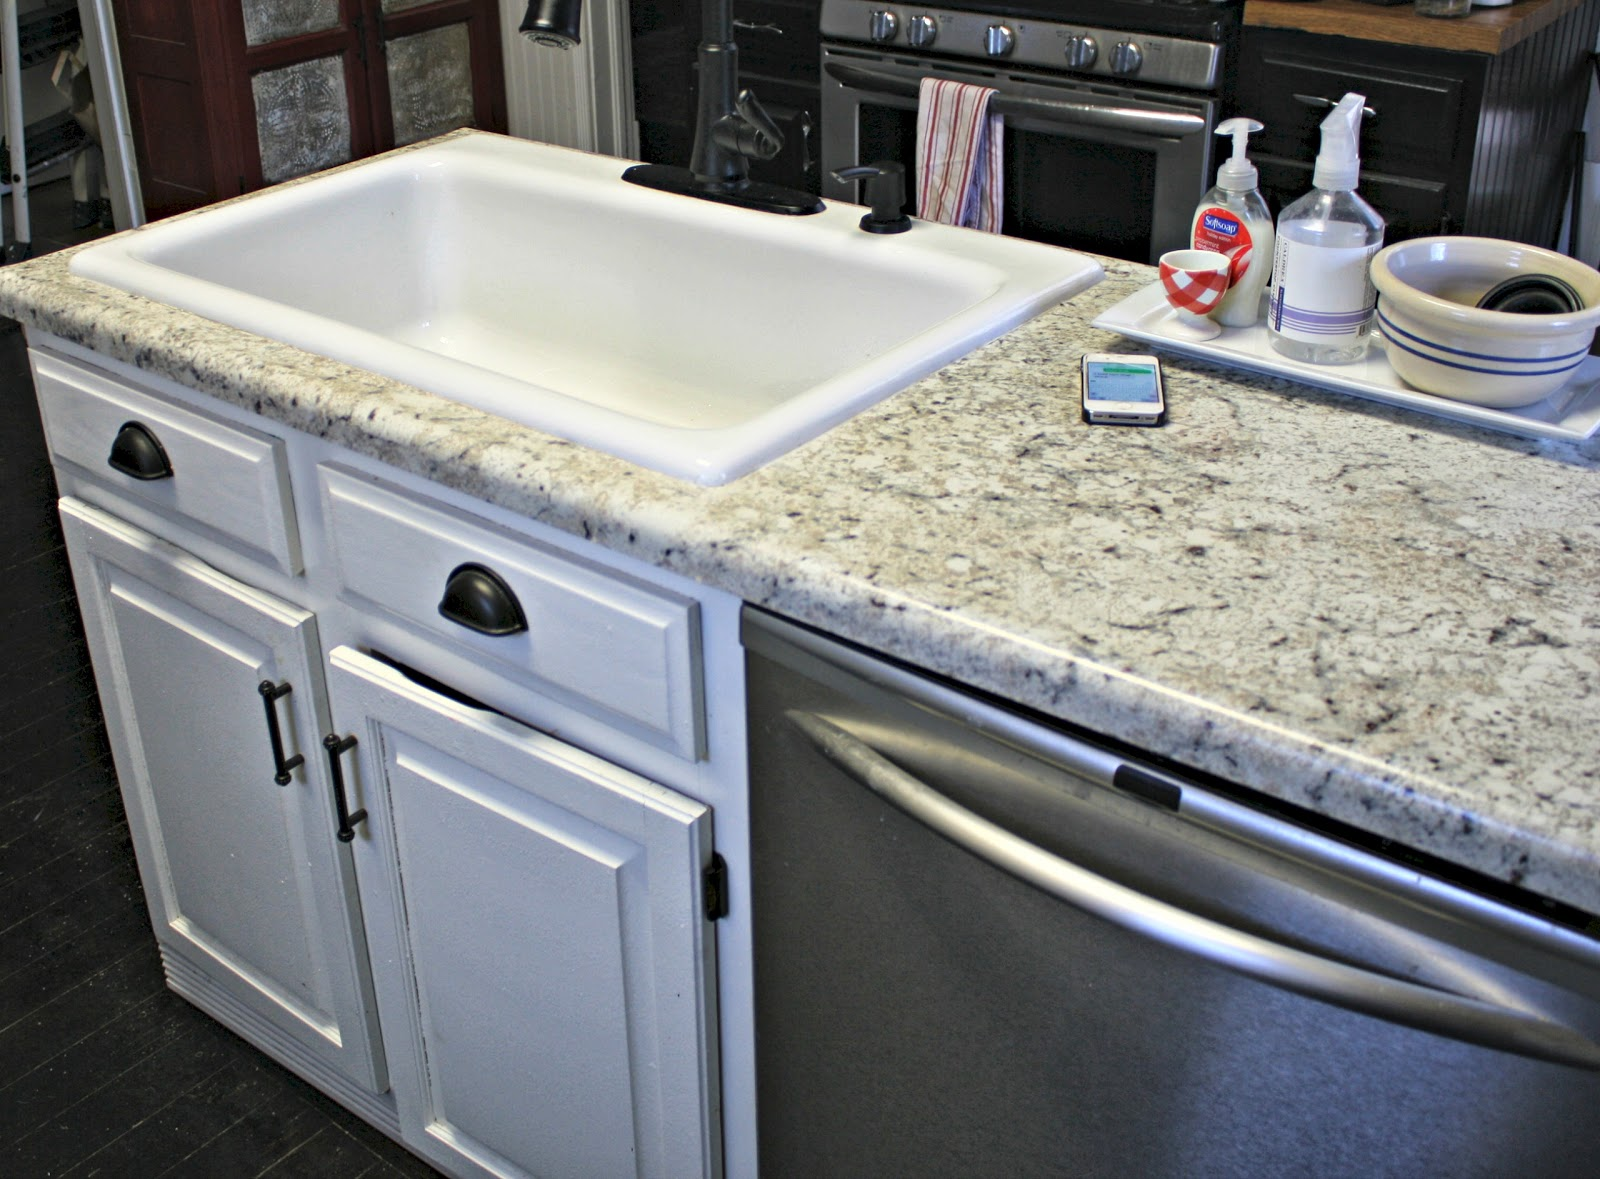 Electricity For Sink Disposal Kitchen Island